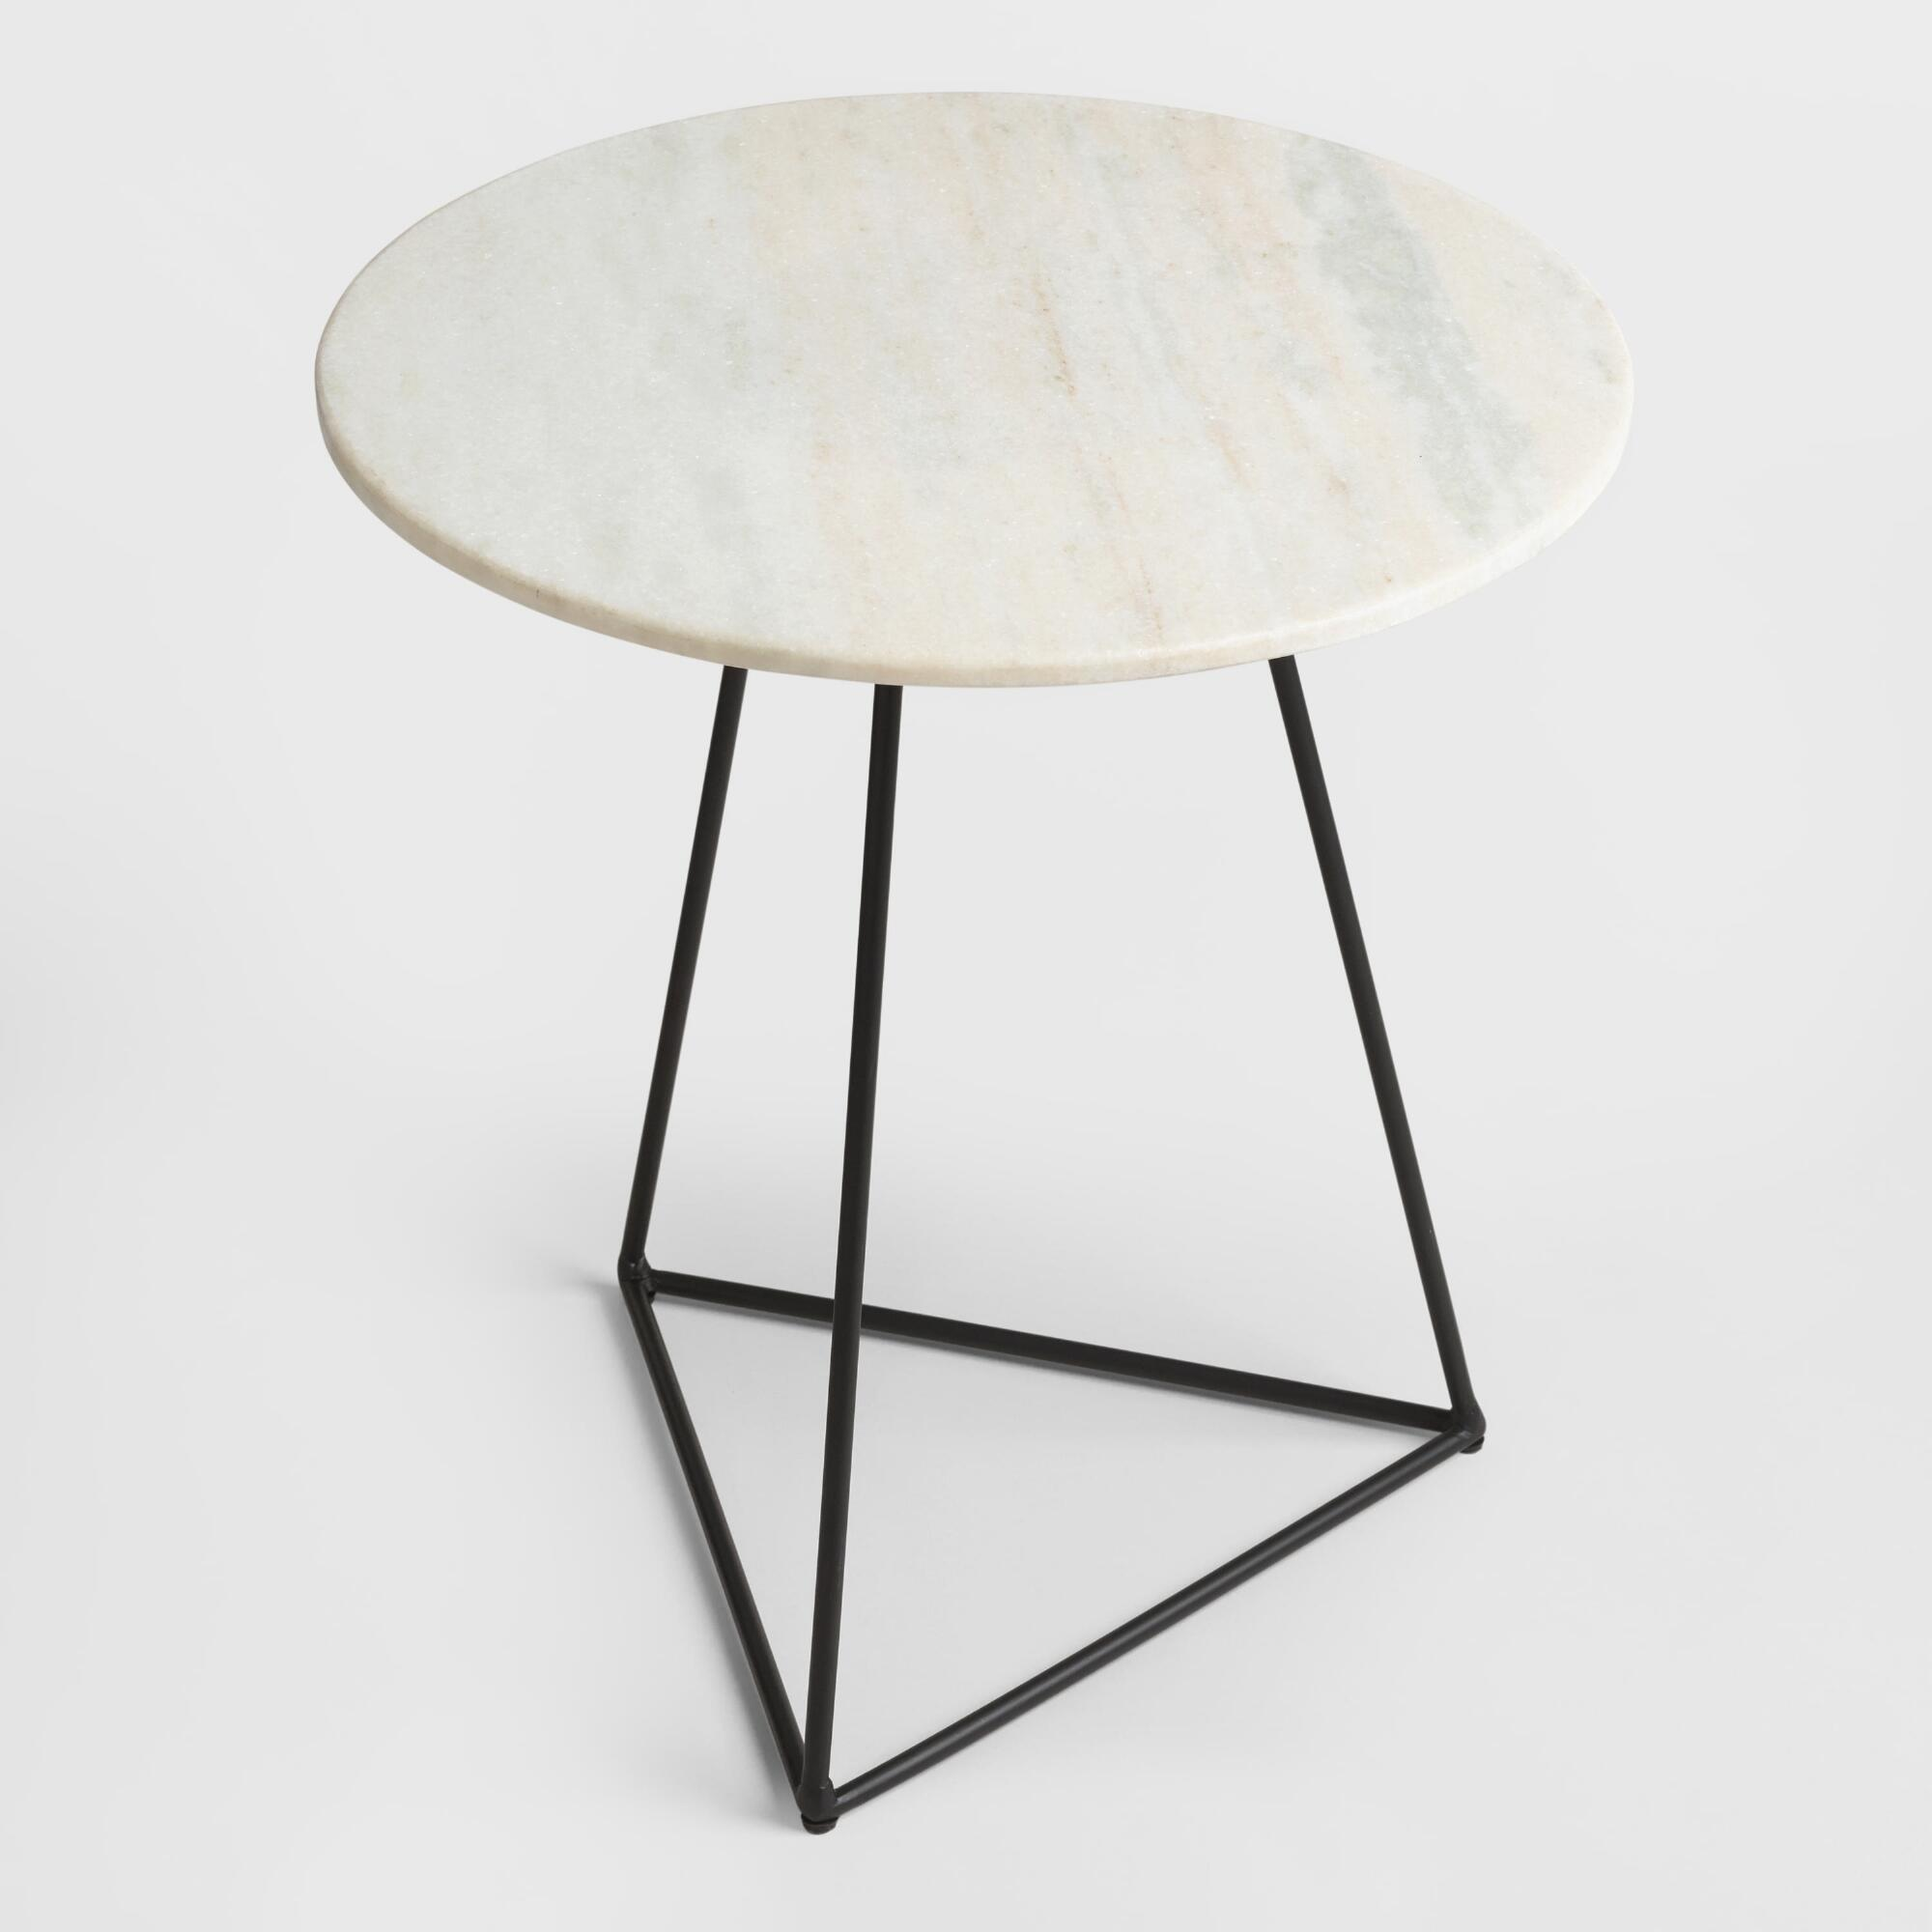 handcrafted skilled artisans our versatile side table white marble top accent features natural alabaster with gray undertones and subtle gold bamboo black decorations round